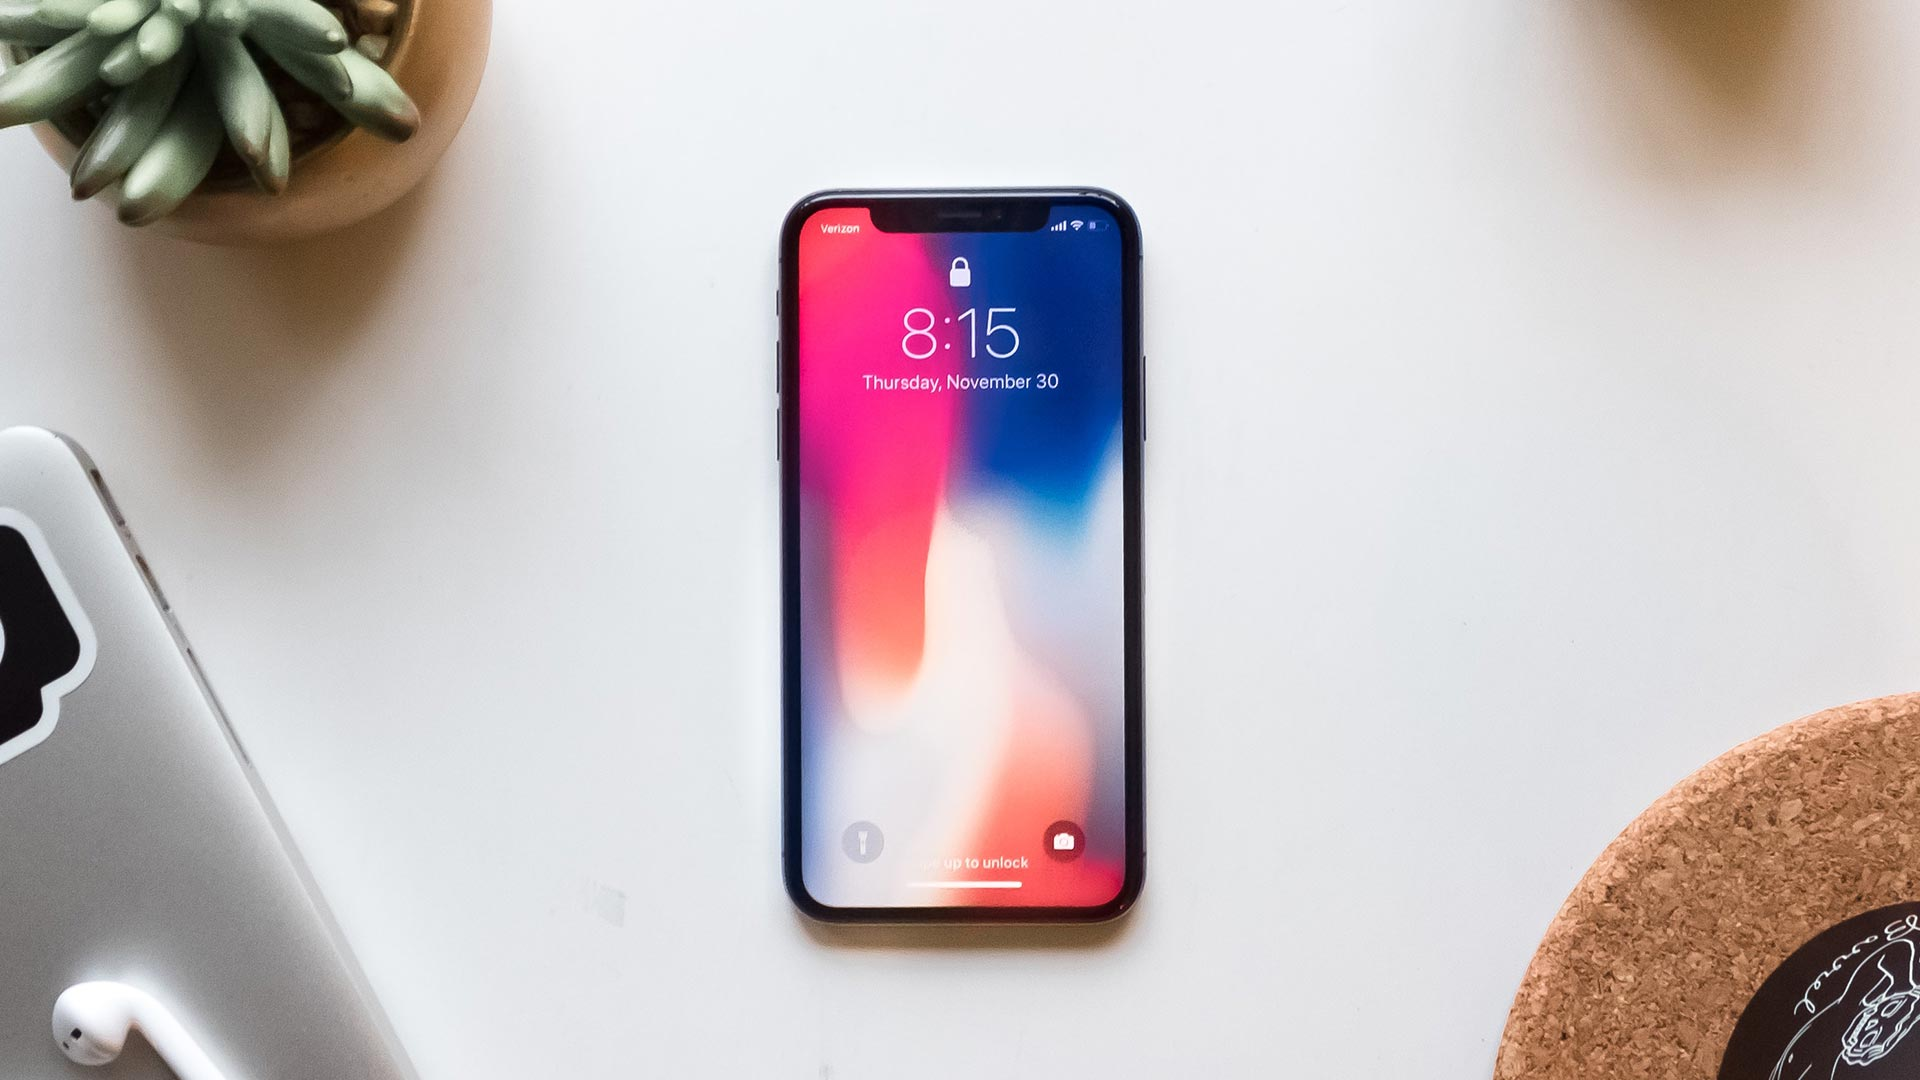 An iPhone sitting on a desk.